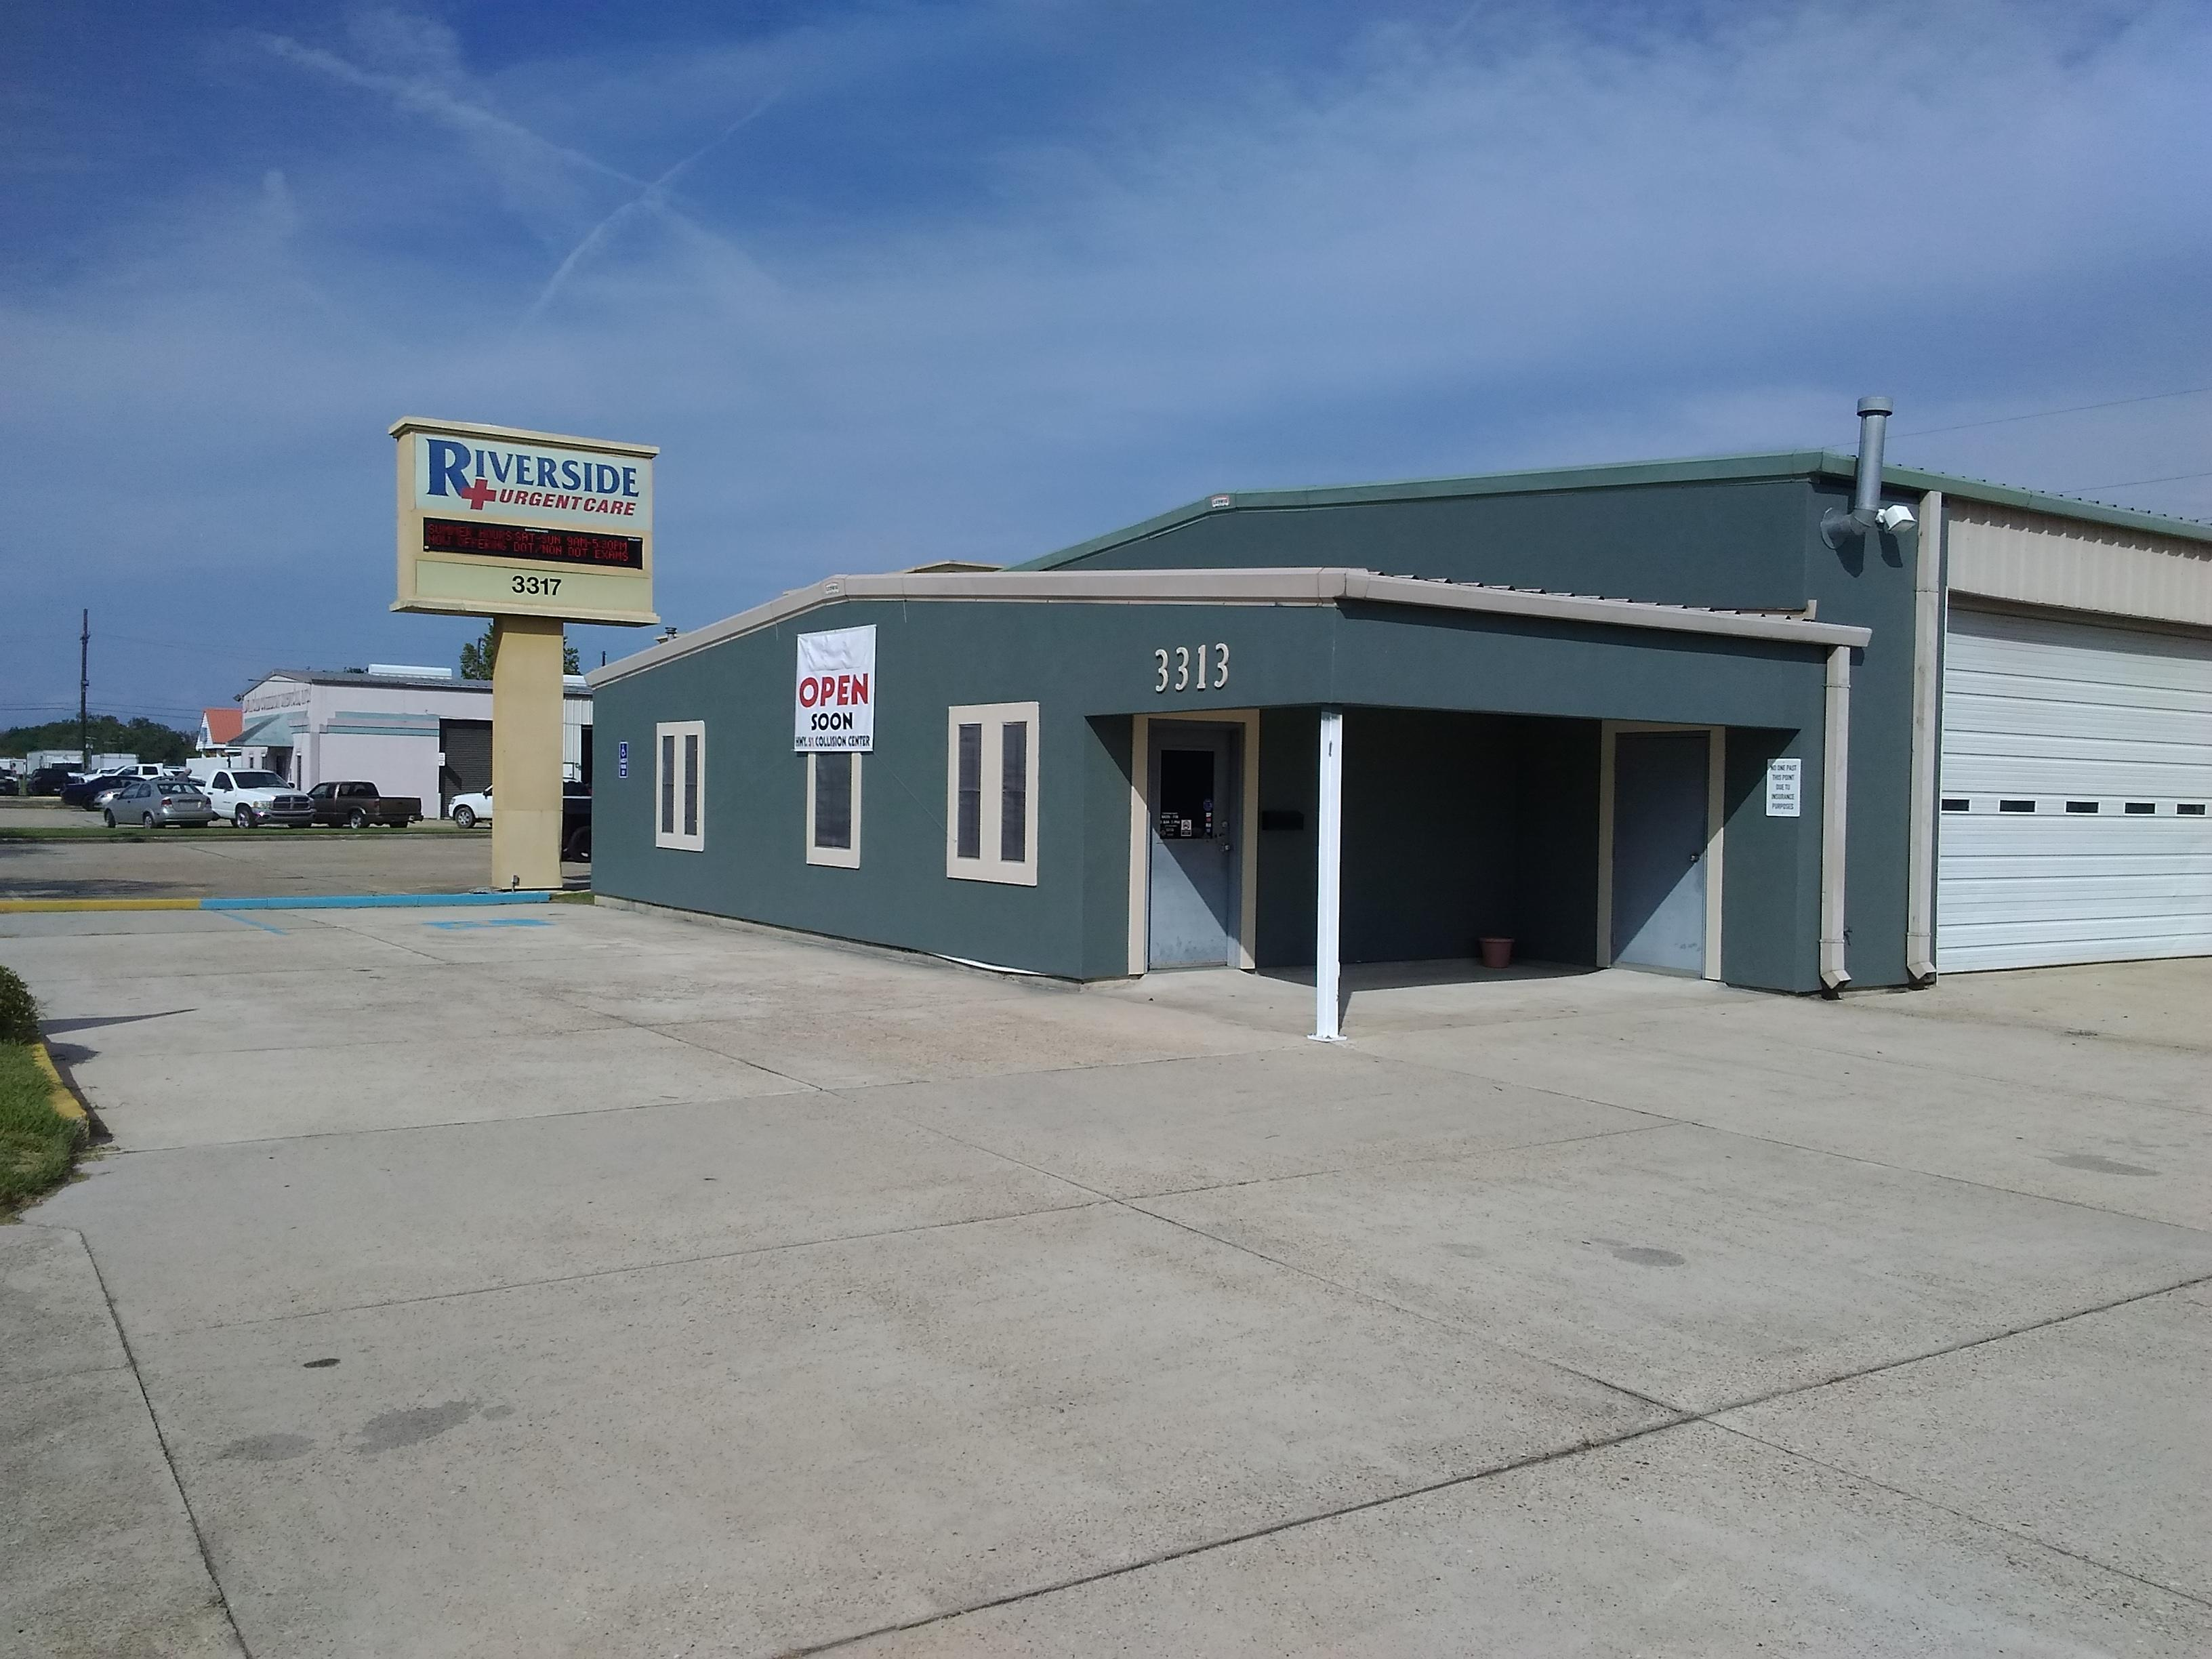 Hwy 51 Collision Center image 1